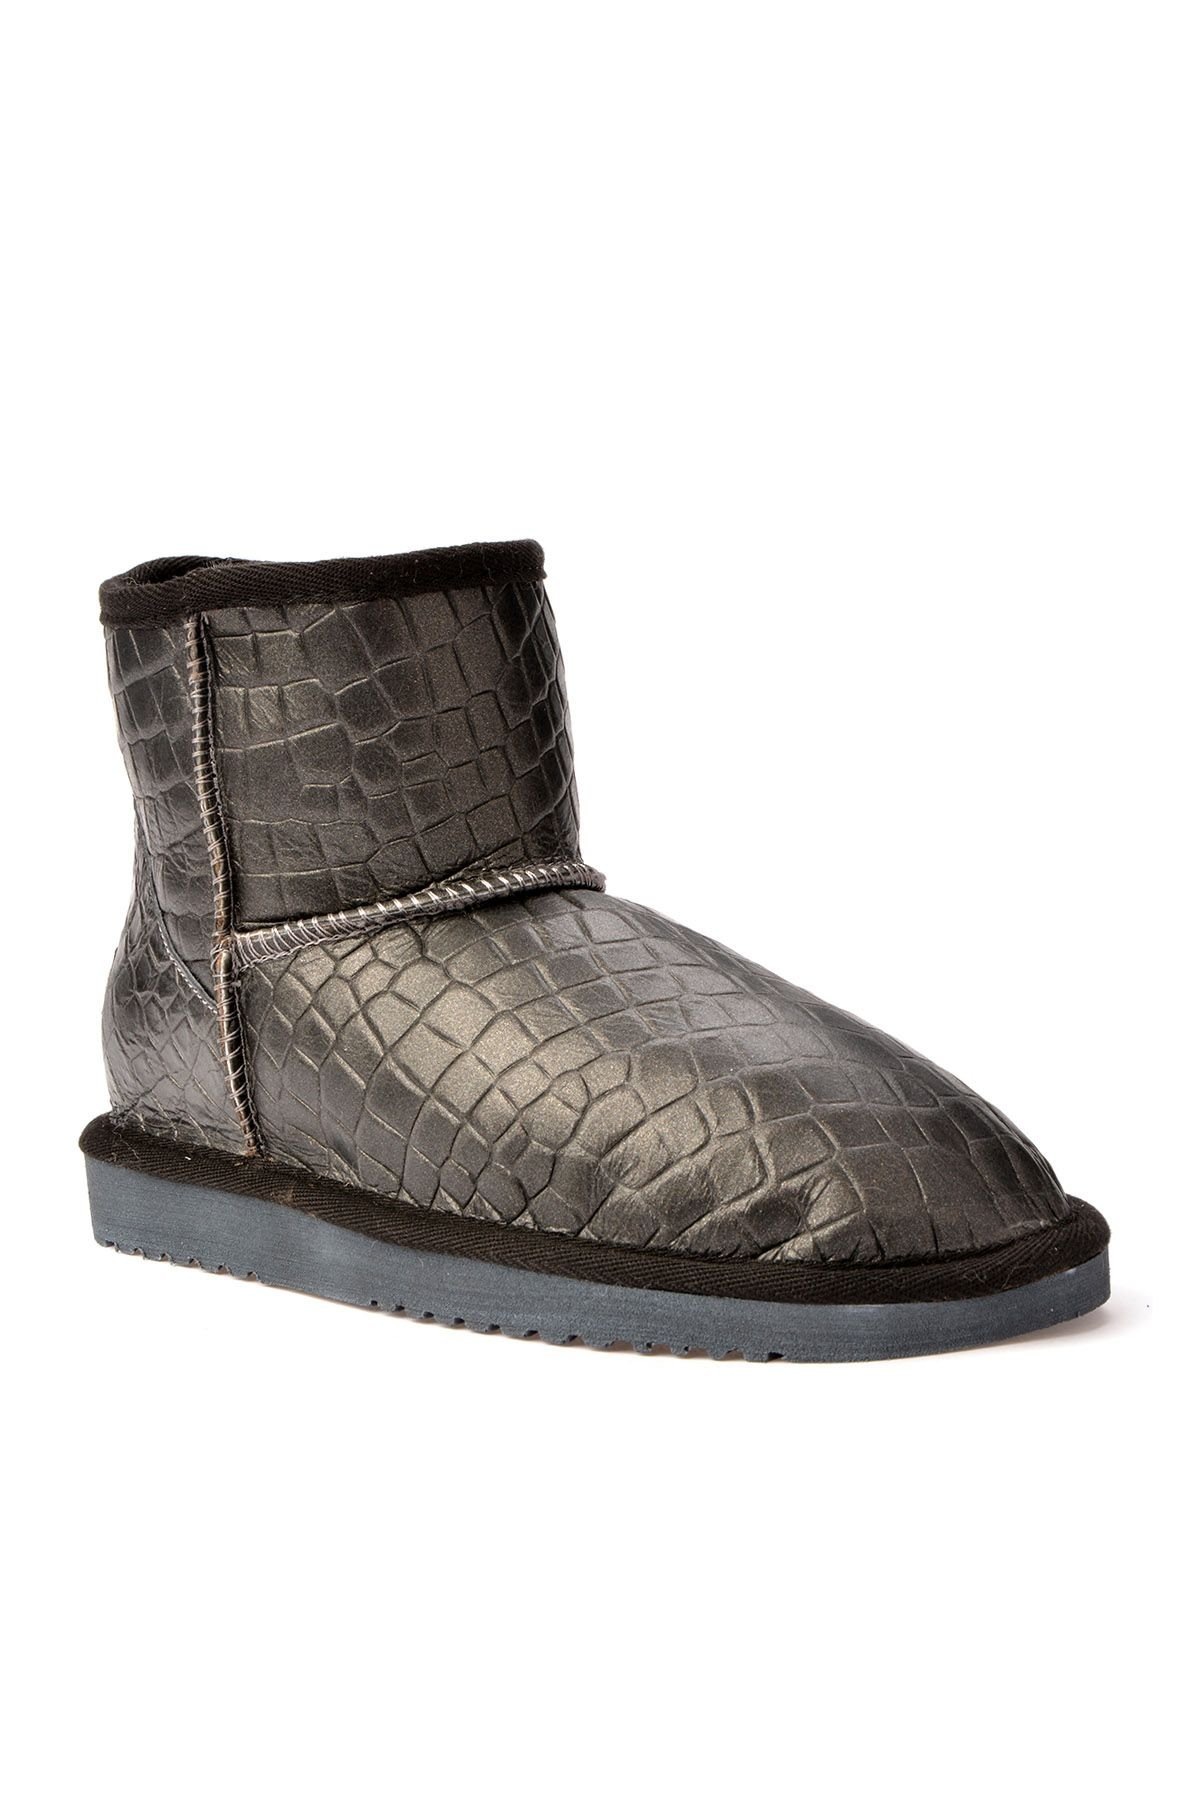 Cool Moon Women Uggs From Genuine Fur With Crocodile Pattern Anthracite-colored